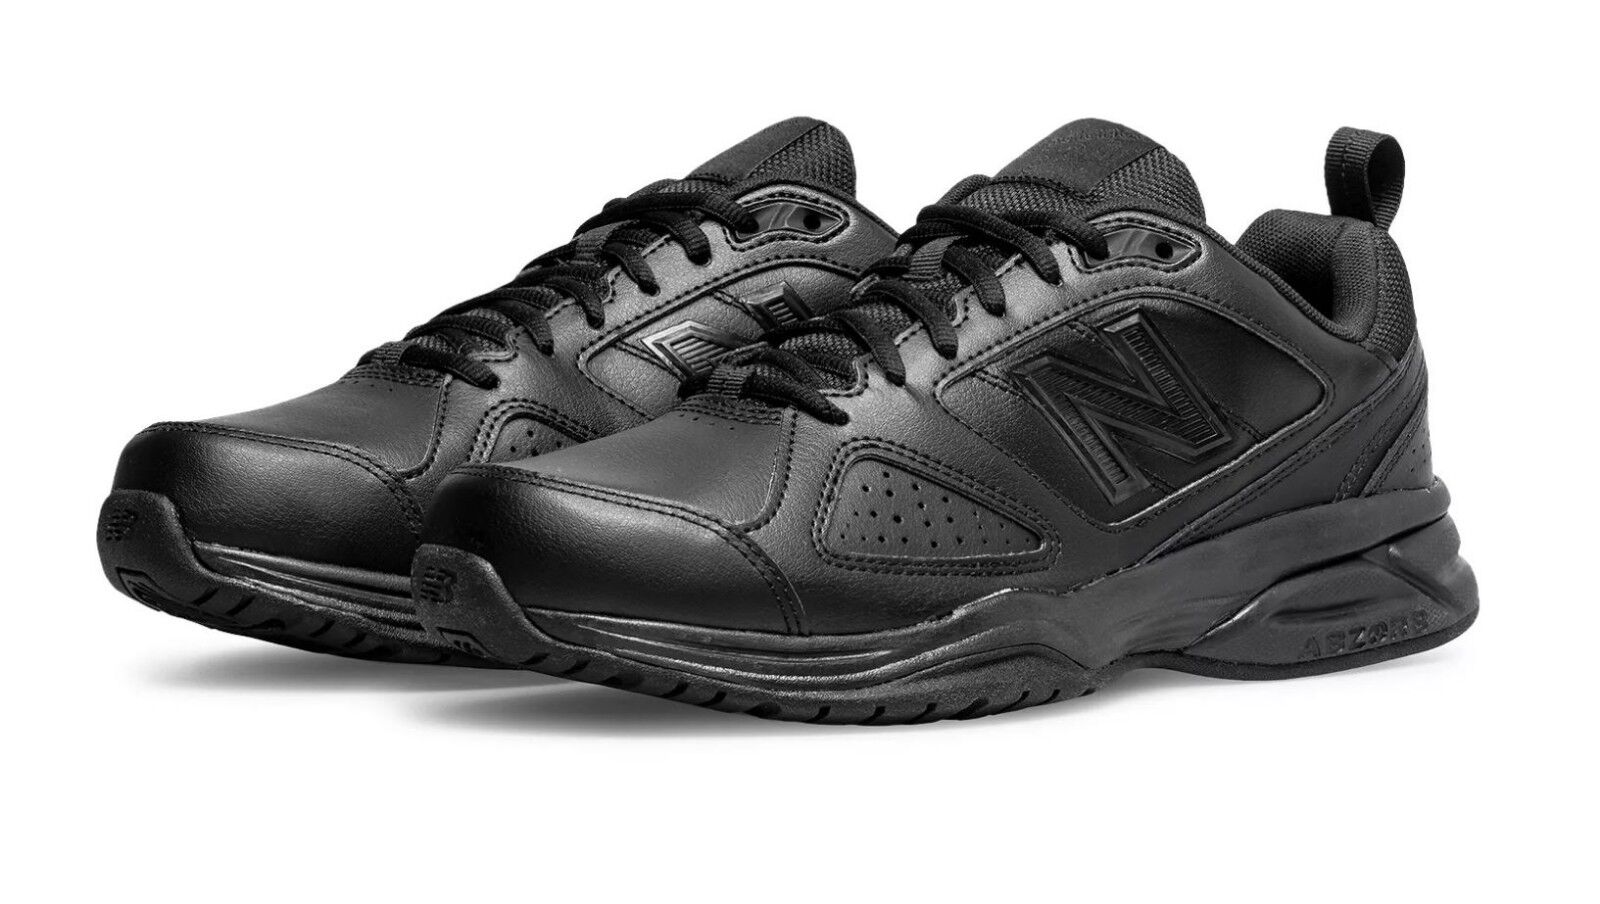 New New New Balance MX624 Mens X-Trainer shoes (2E) + FREE AUS DELIVERY  (Black) 9ee040